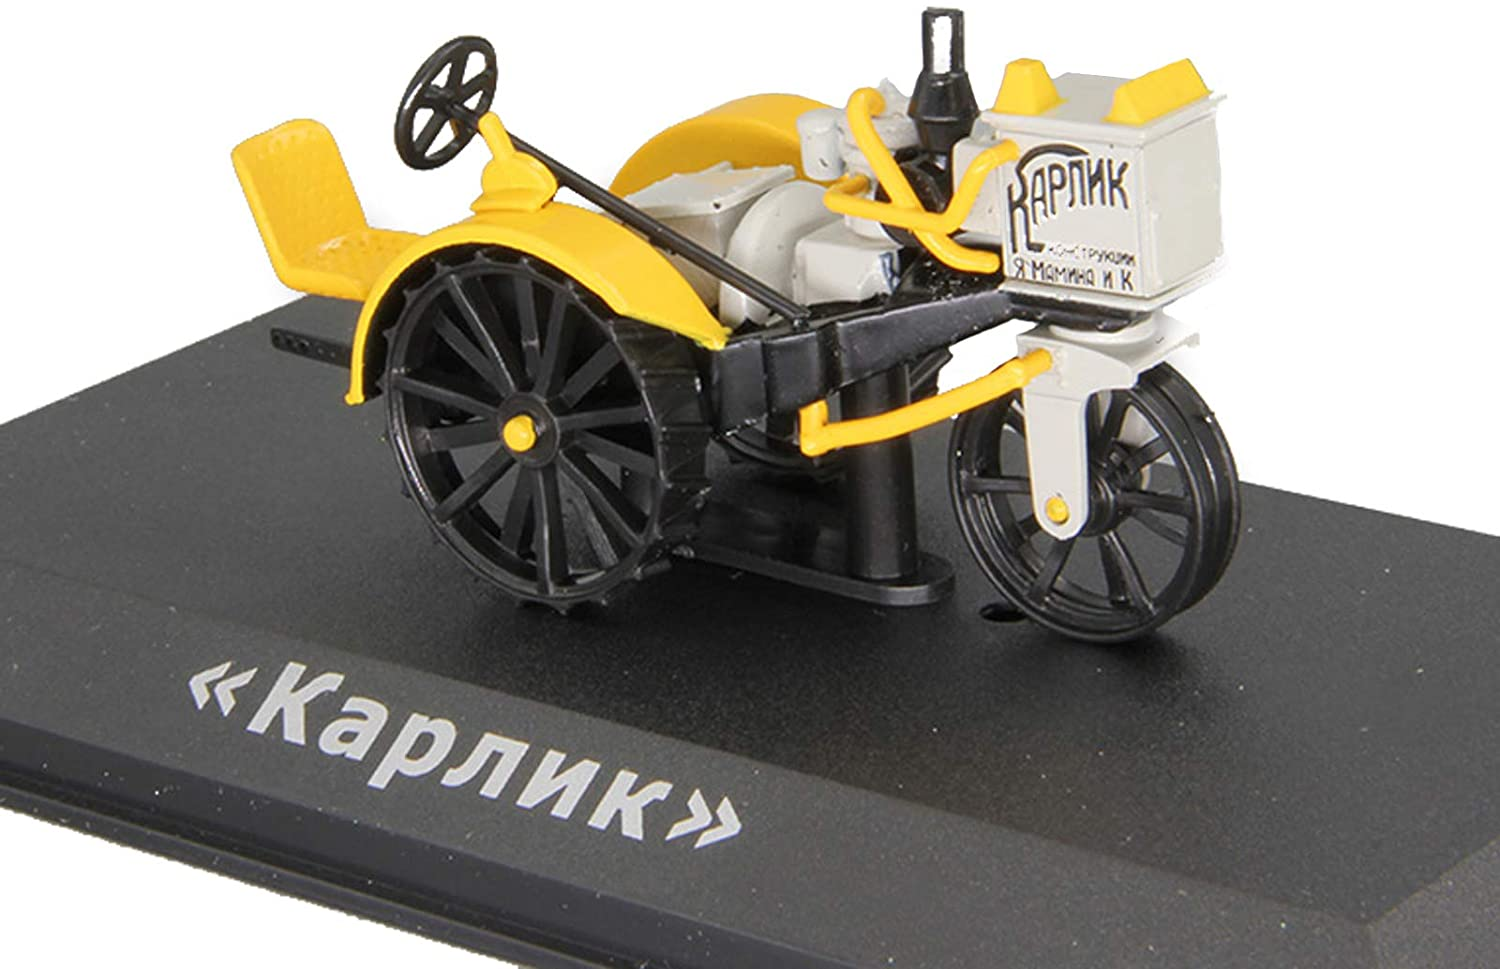 Karlik (Карлик - Dwarf) 1924 Year - Legendary Soviet Simple Tractor - 1/43 Collectible Model Vehicle - Soviet Simple Tractor by Plant Revival